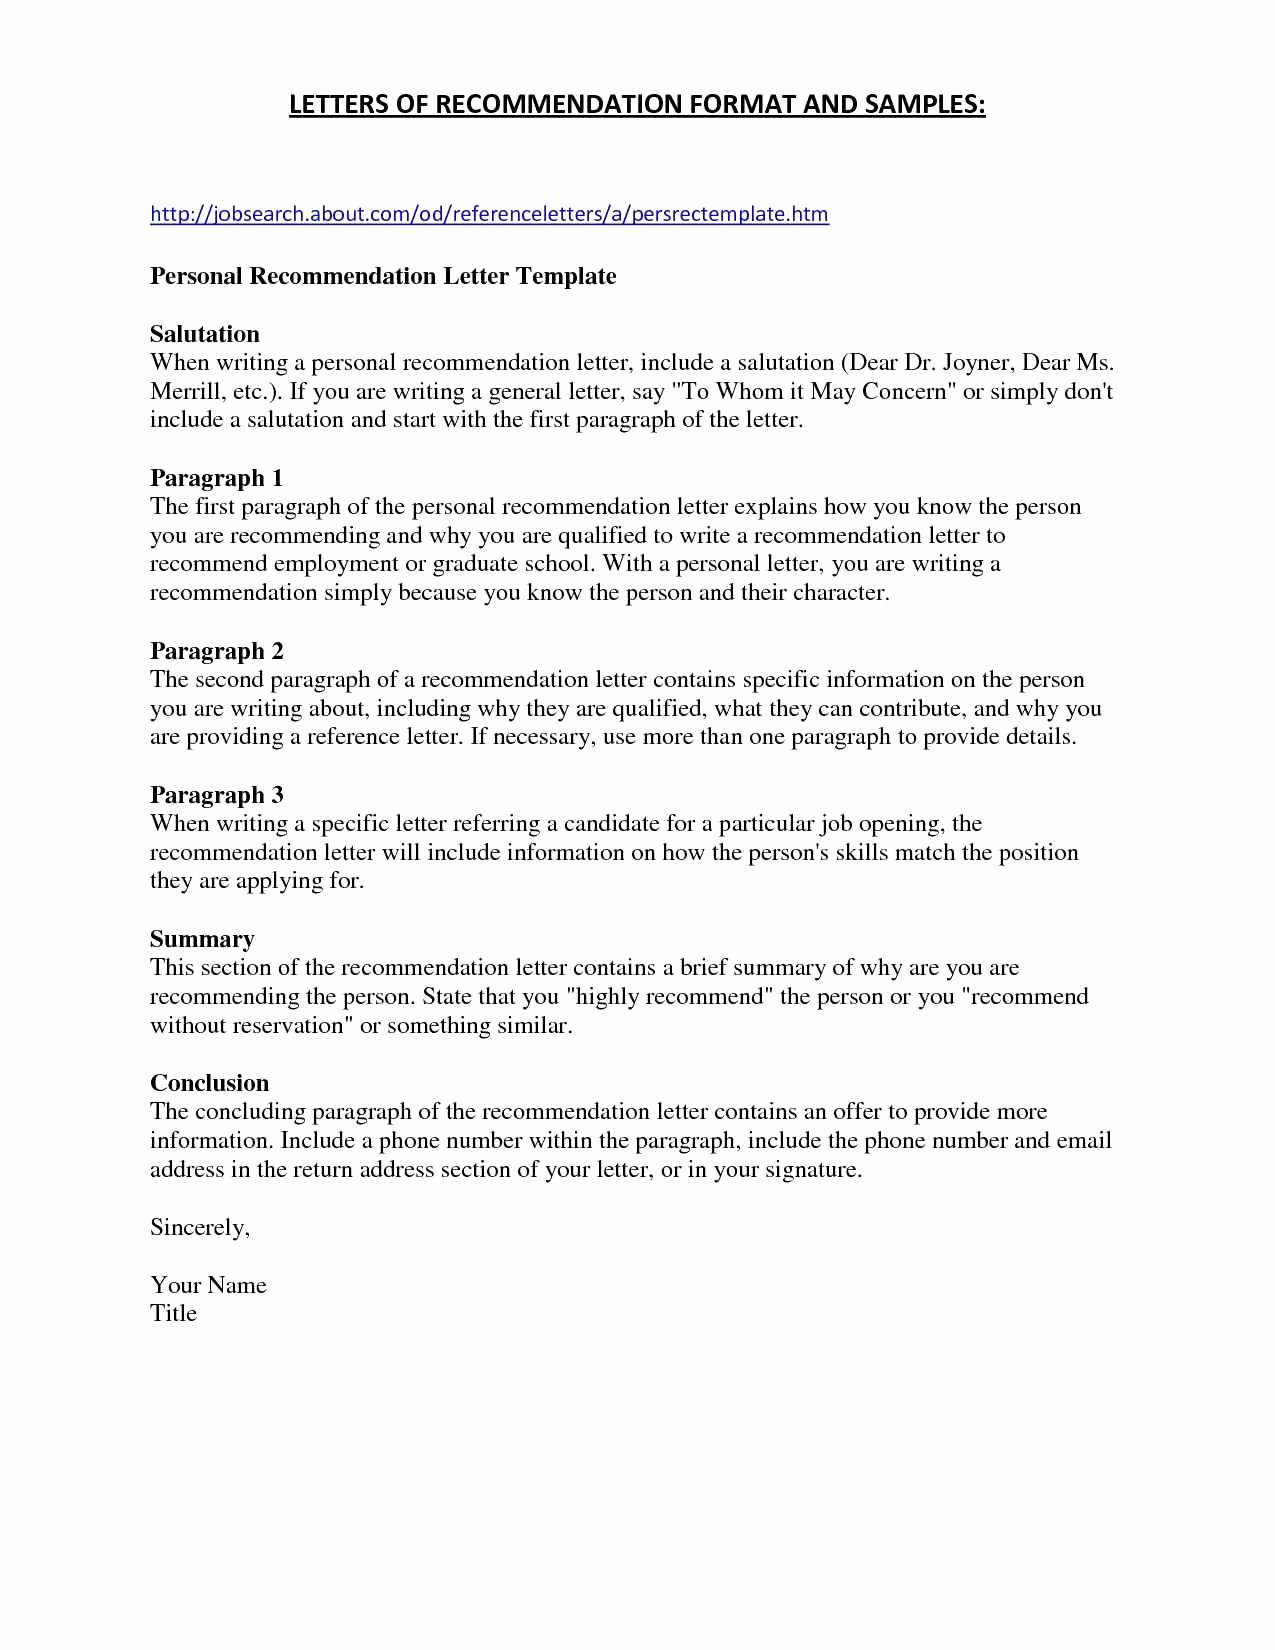 Cover Letter Template 2017 - Resume Cover Letter Examples 2017 Fresh It Covering Letter Examples